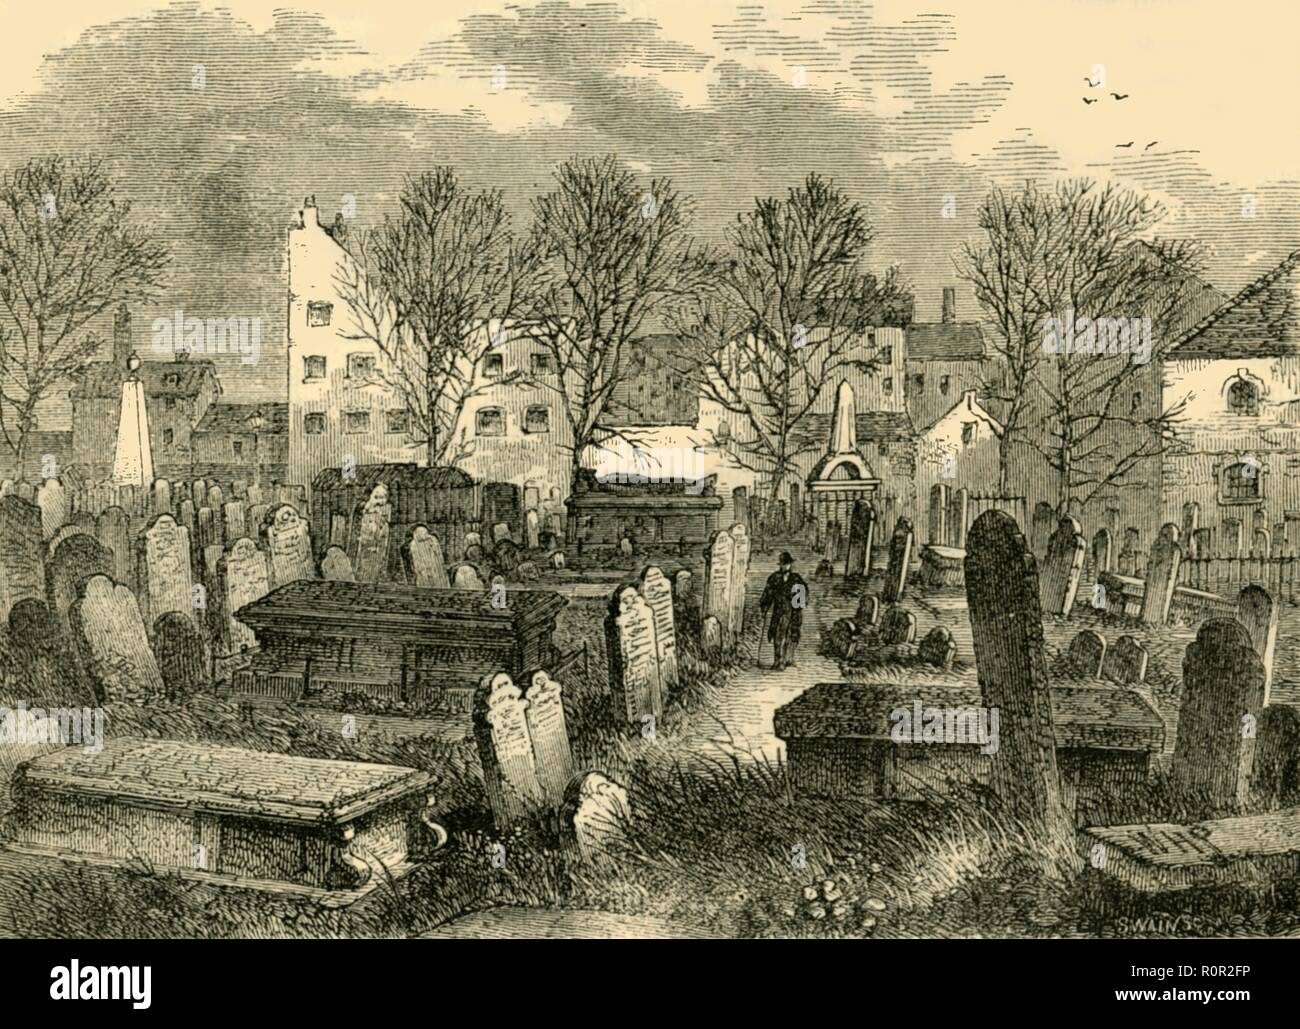 'Bunhill Fields Burial-Ground', c1872. Bunhill Fields in Finsbury, London, was used as a burial ground from 1665 until 1854. It was nondenominational, and notable graves include those of writers artists such as John Bunyan, Daniel Defoe and William Blake. In 1852, the Burial Act enabled burial grounds to be closed once they became full. From Old and New London, Vol. II: A Narrative of Its History, Its People, and Its Places, by Walter Thornbury. [Cassell, Petter, Galpin & Co., London, Paris & New York] - Stock Image